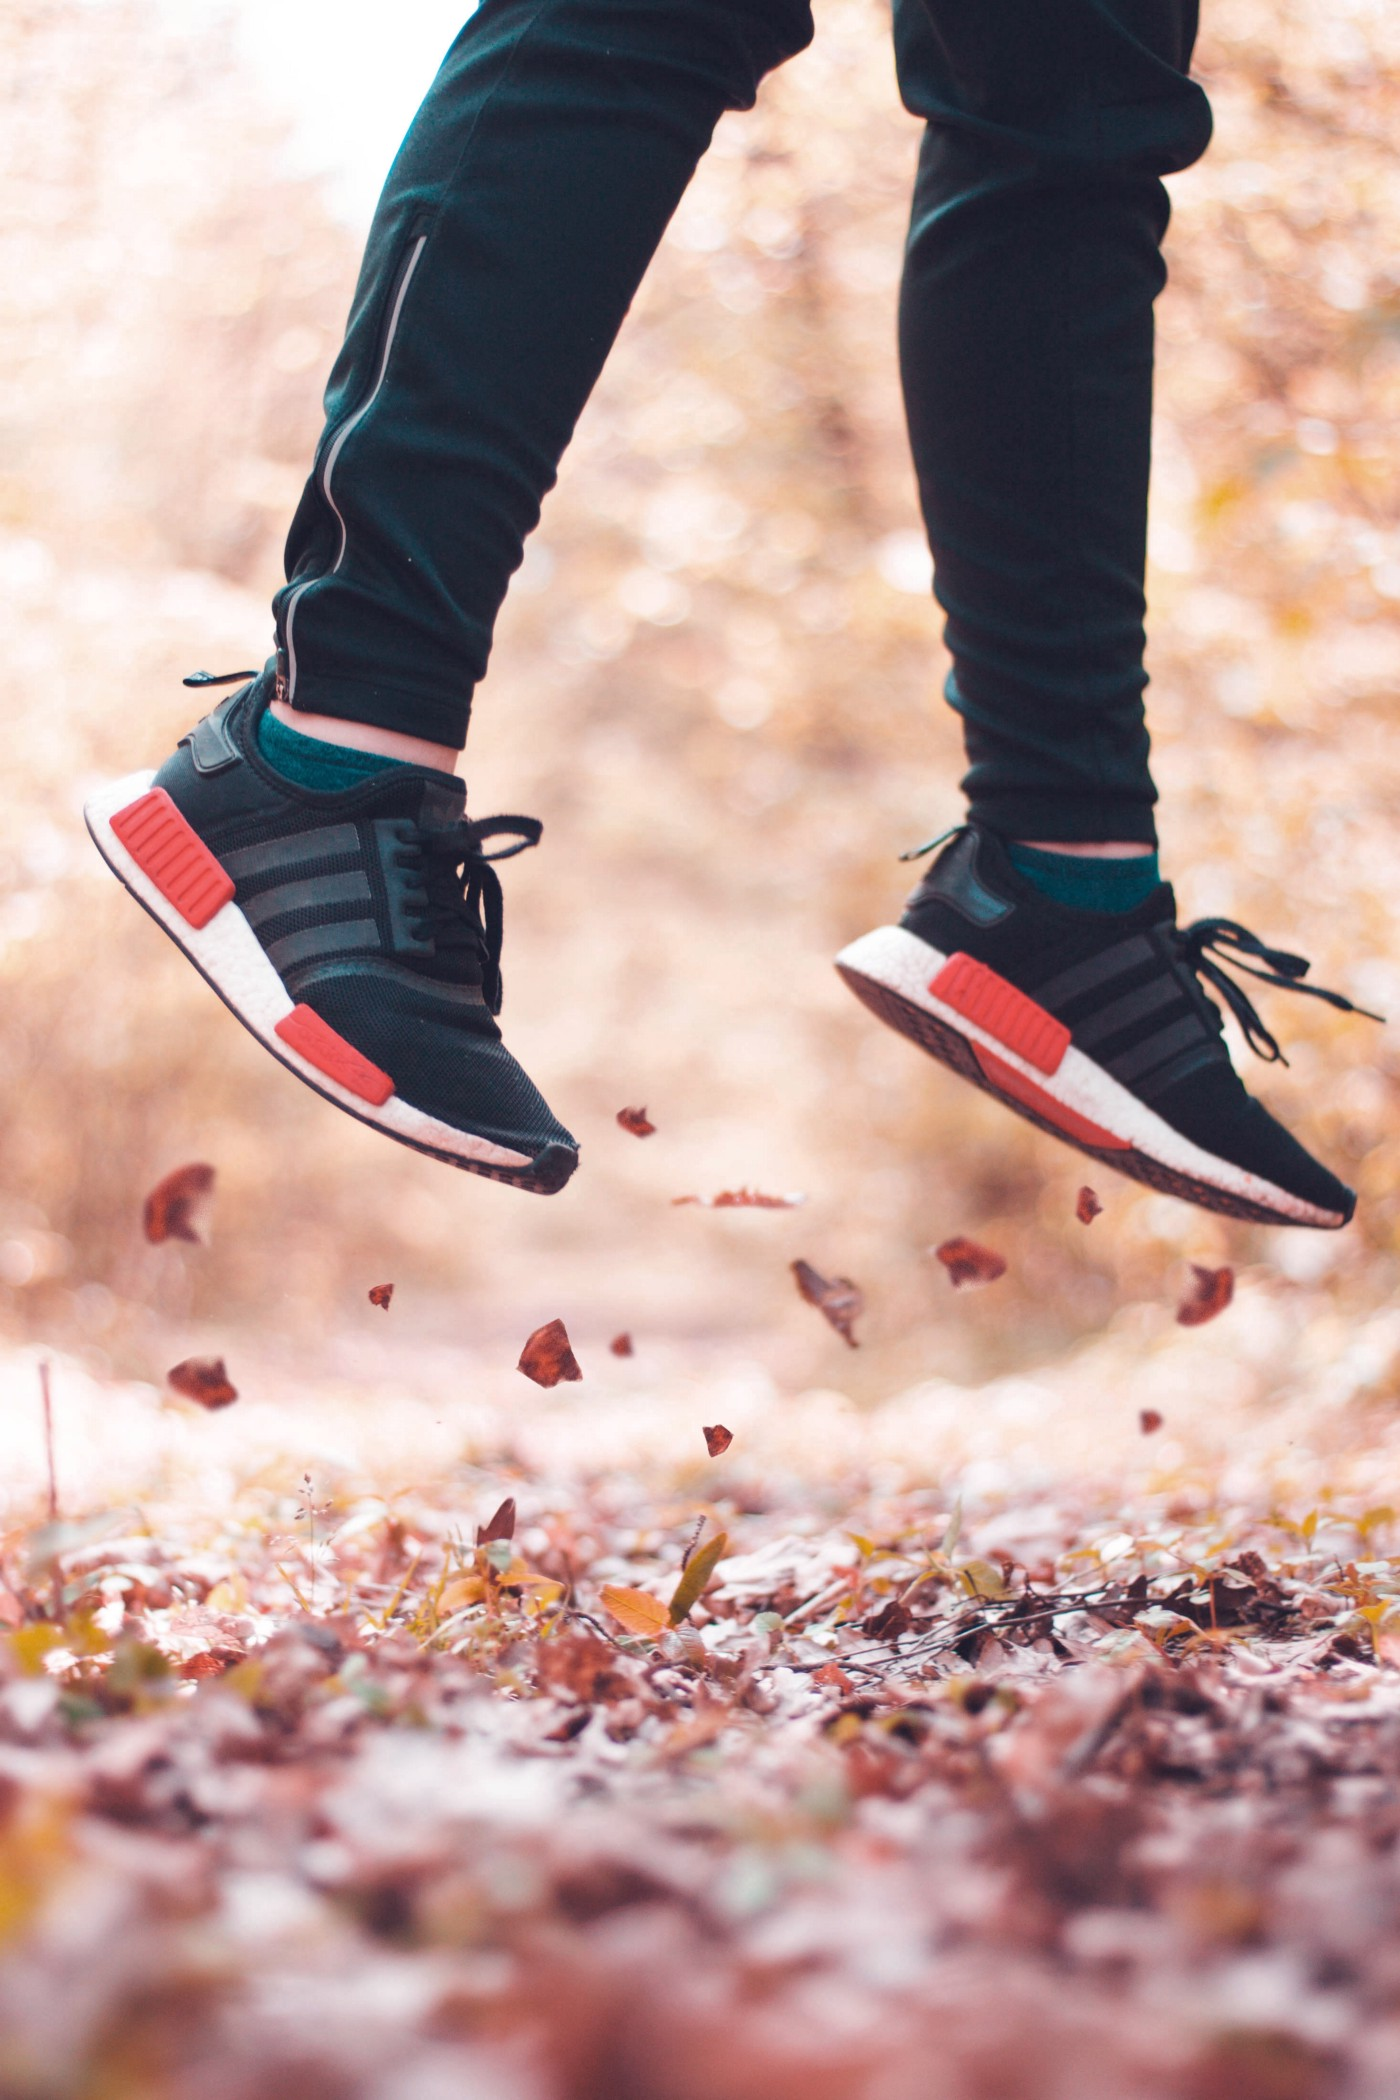 Sneaker-clad feet and lower leg shown jumping up from leaf-strewn ground